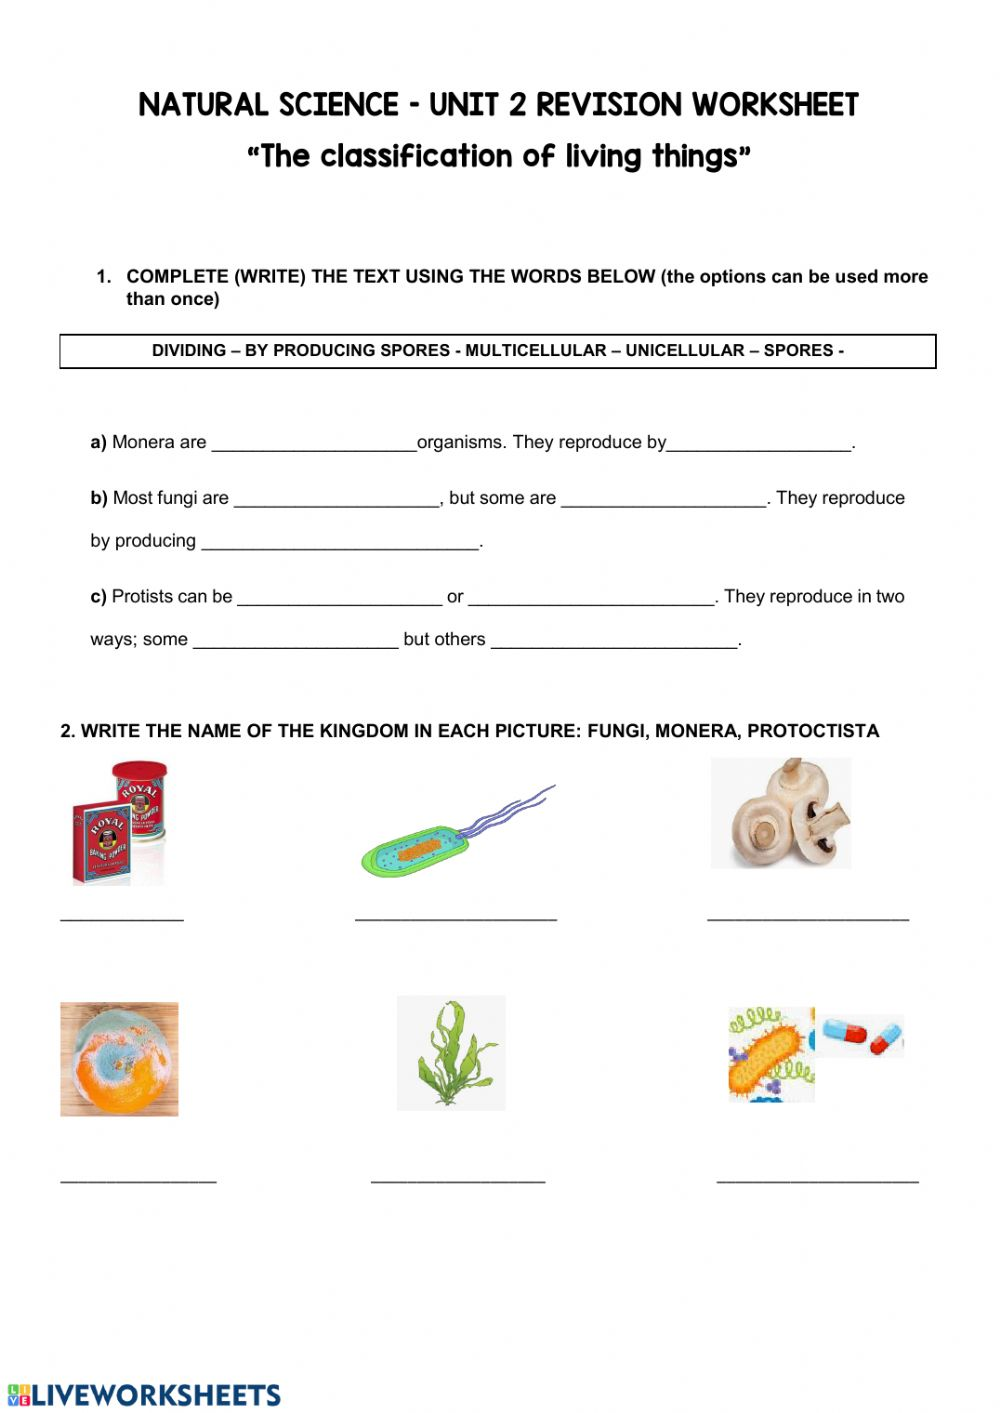 medium resolution of 5º The classification of living things - Unit 2 worksheet